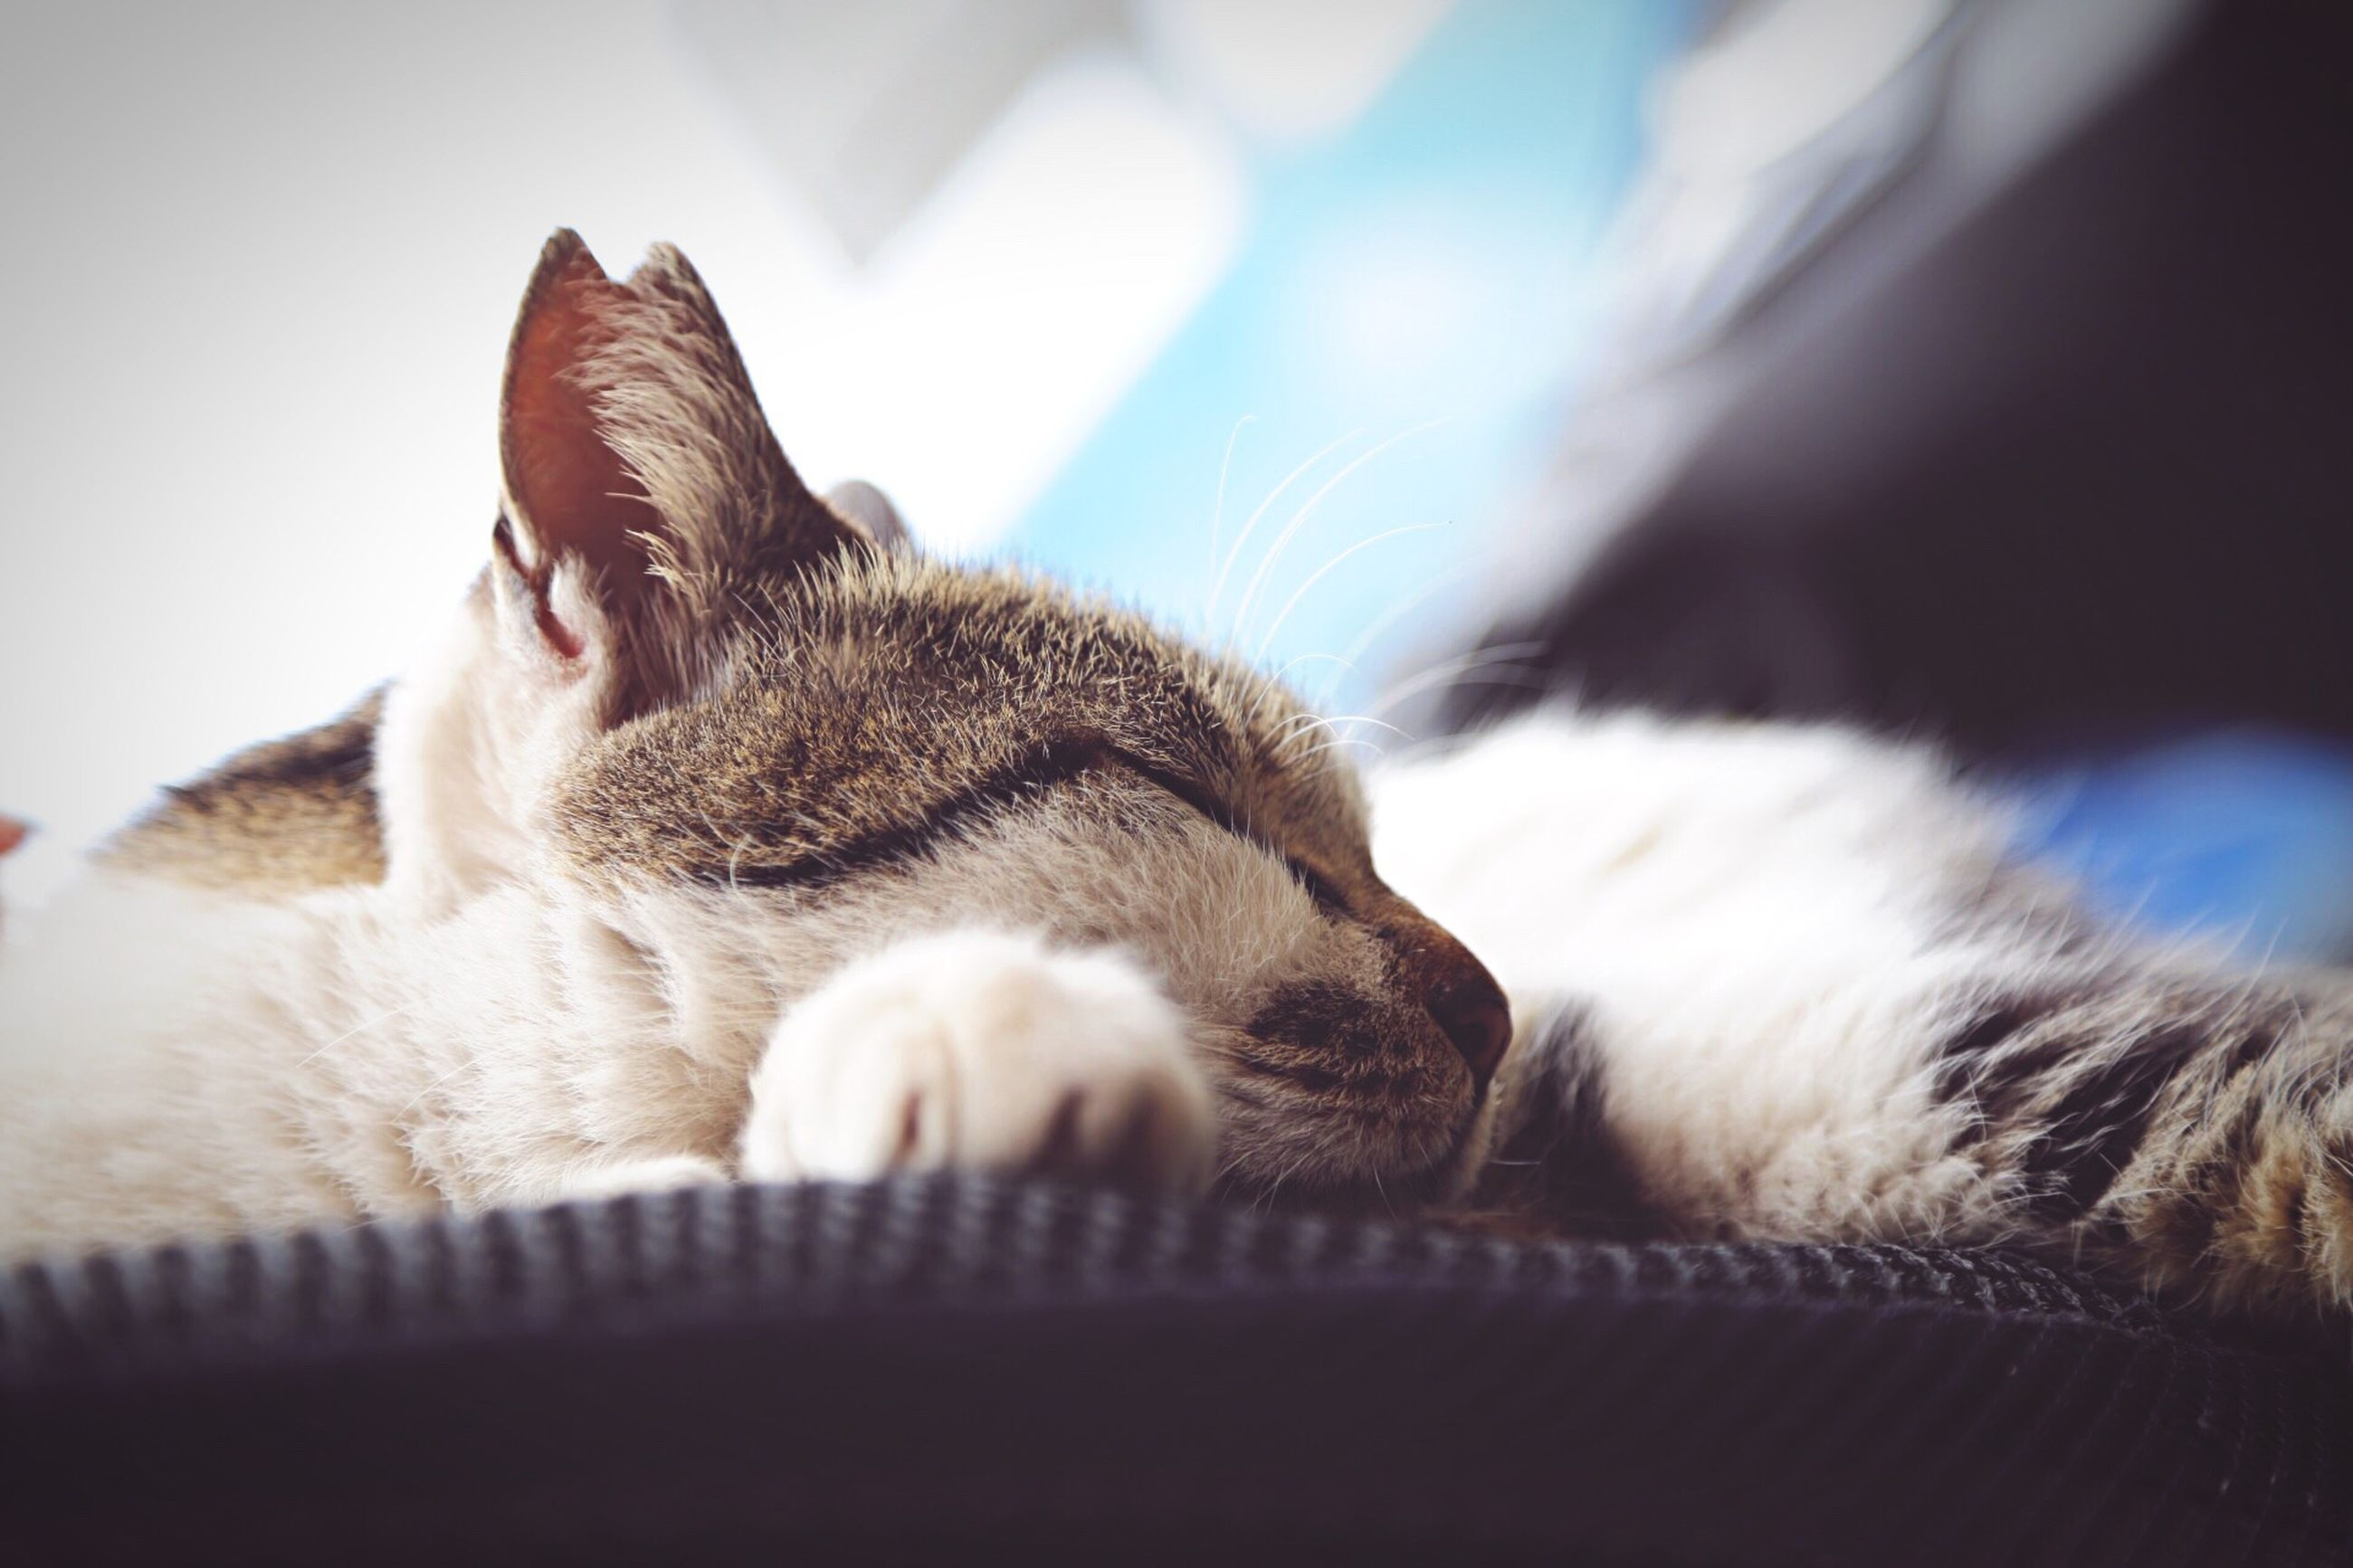 domestic cat, pets, one animal, animal themes, domestic animals, cat, mammal, feline, relaxation, indoors, whisker, resting, lying down, close-up, home interior, animal head, focus on foreground, selective focus, relaxing, looking away